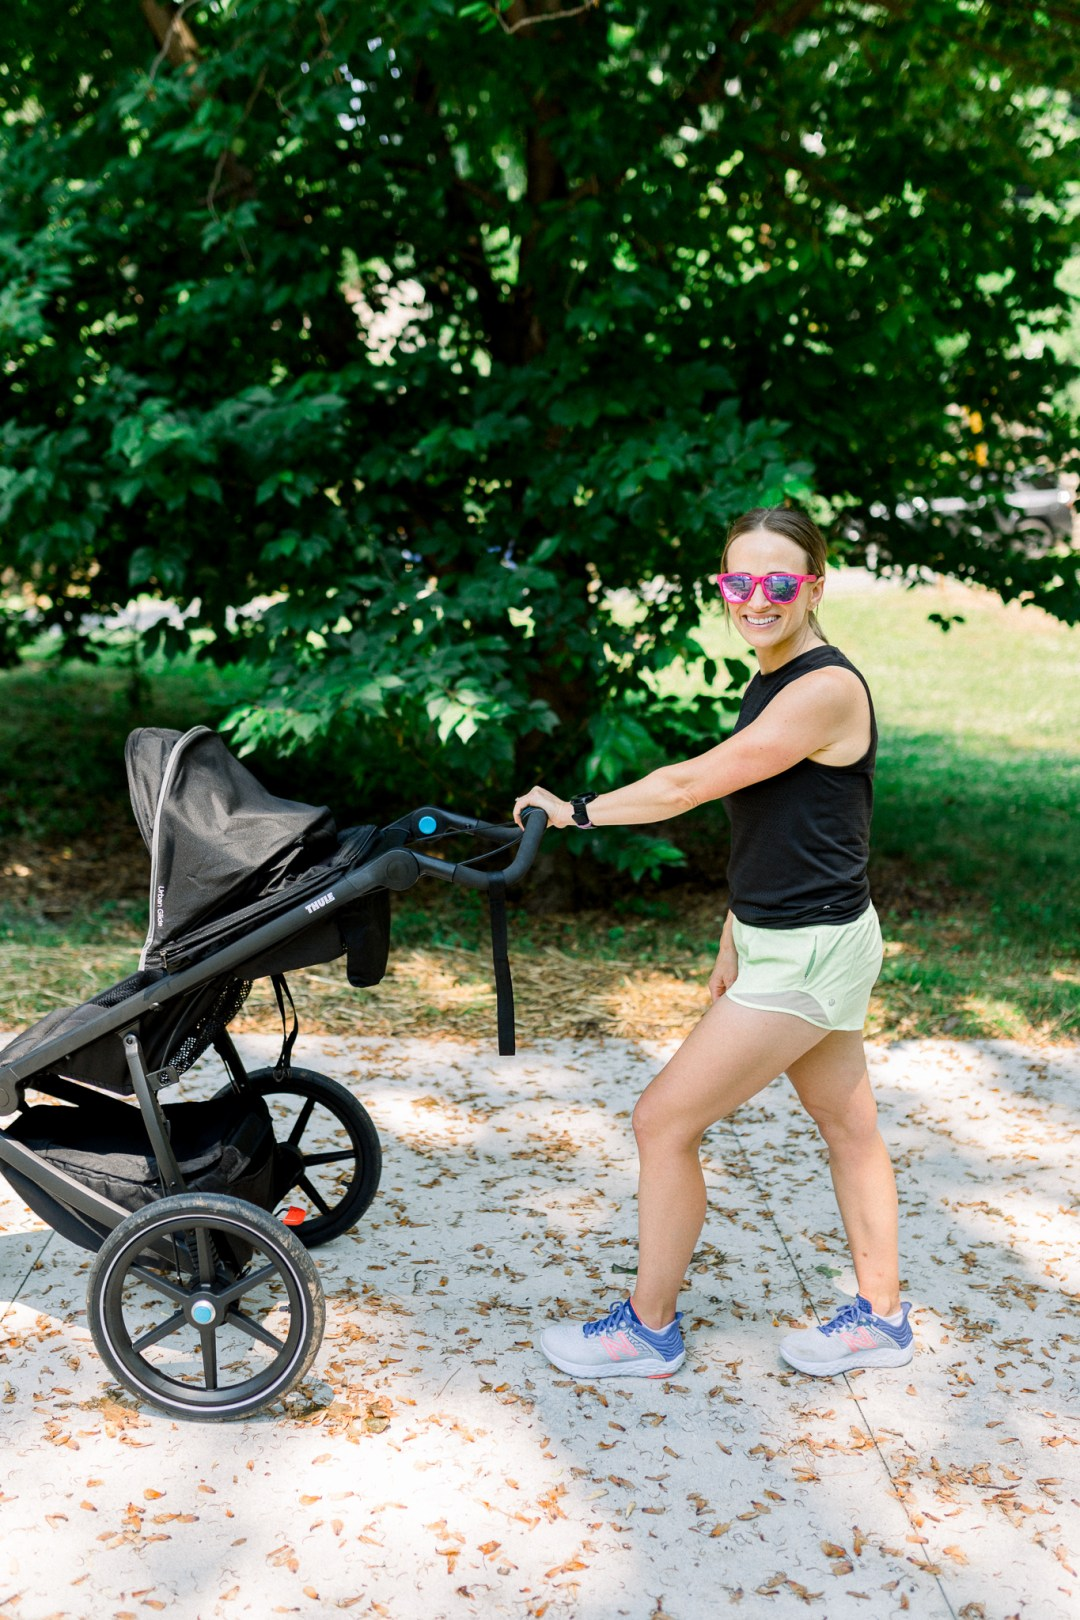 How to run with baby in stroller